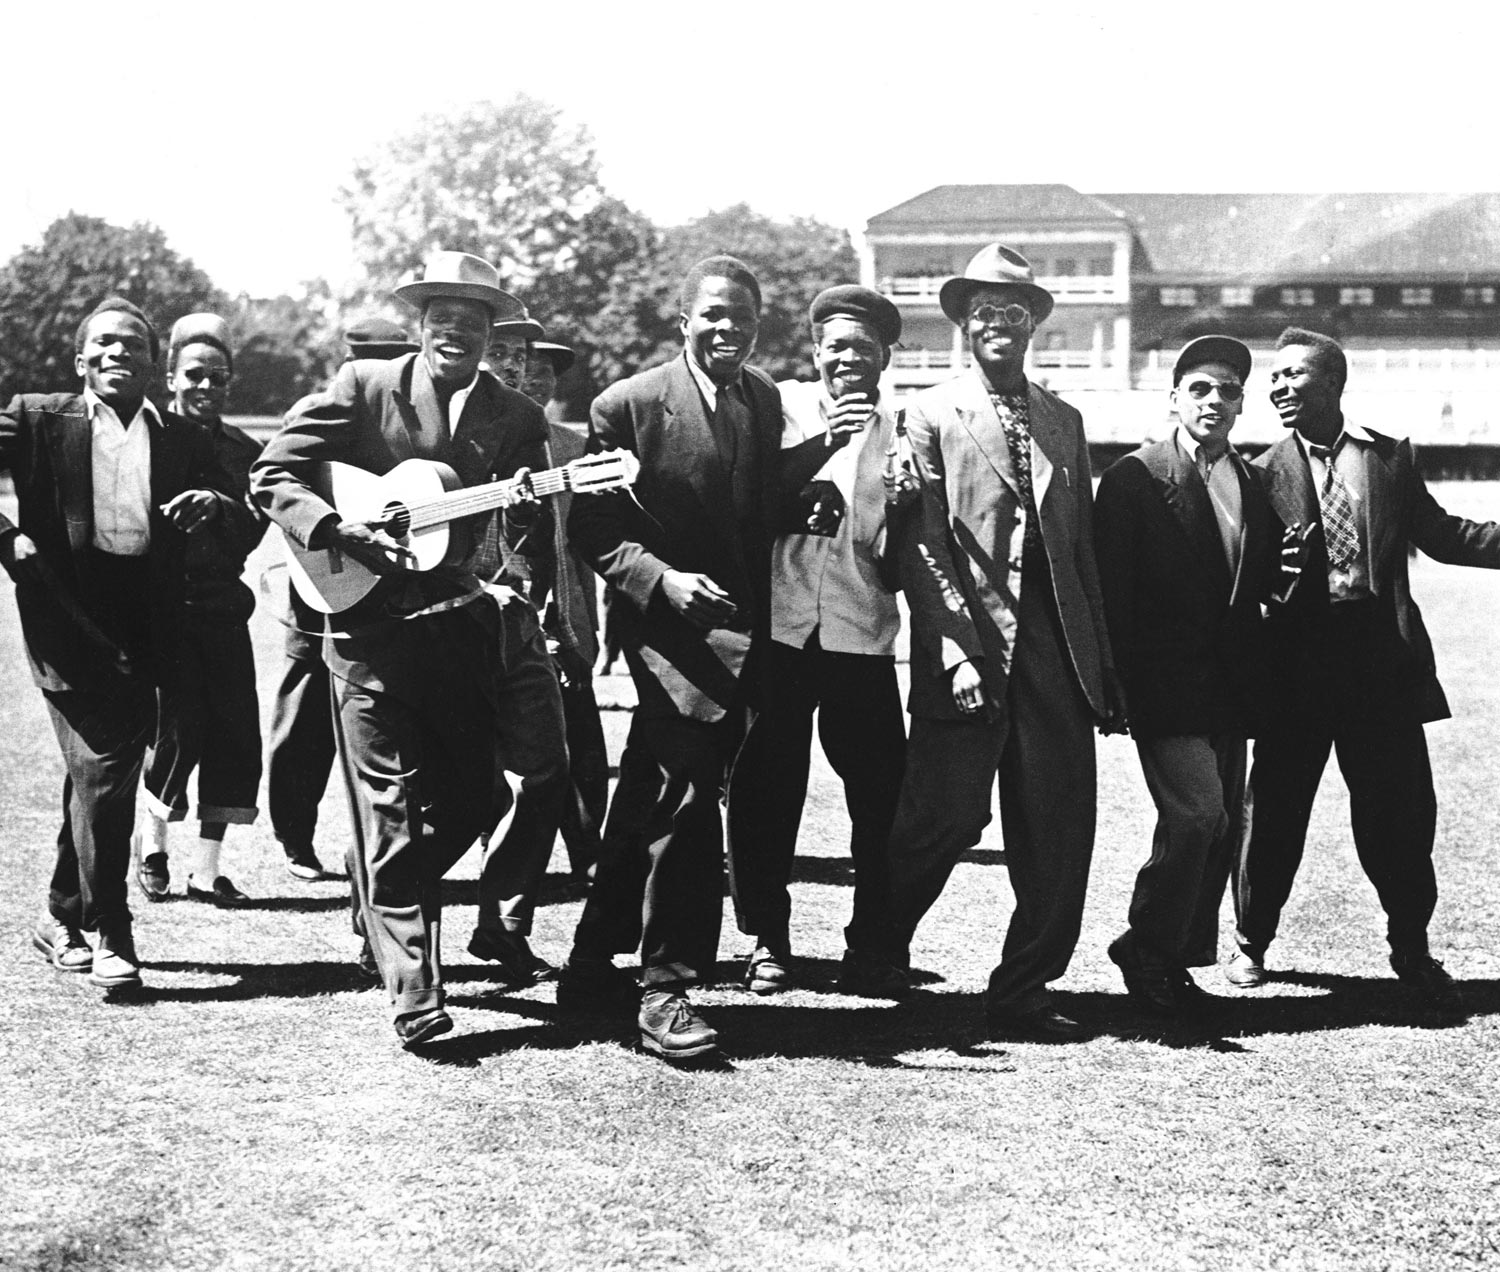 Lord Kitchener, (with guitar), leads a group of West Indies fans onto the pitch after seeing their team beat England. Photograph by Press Association Images